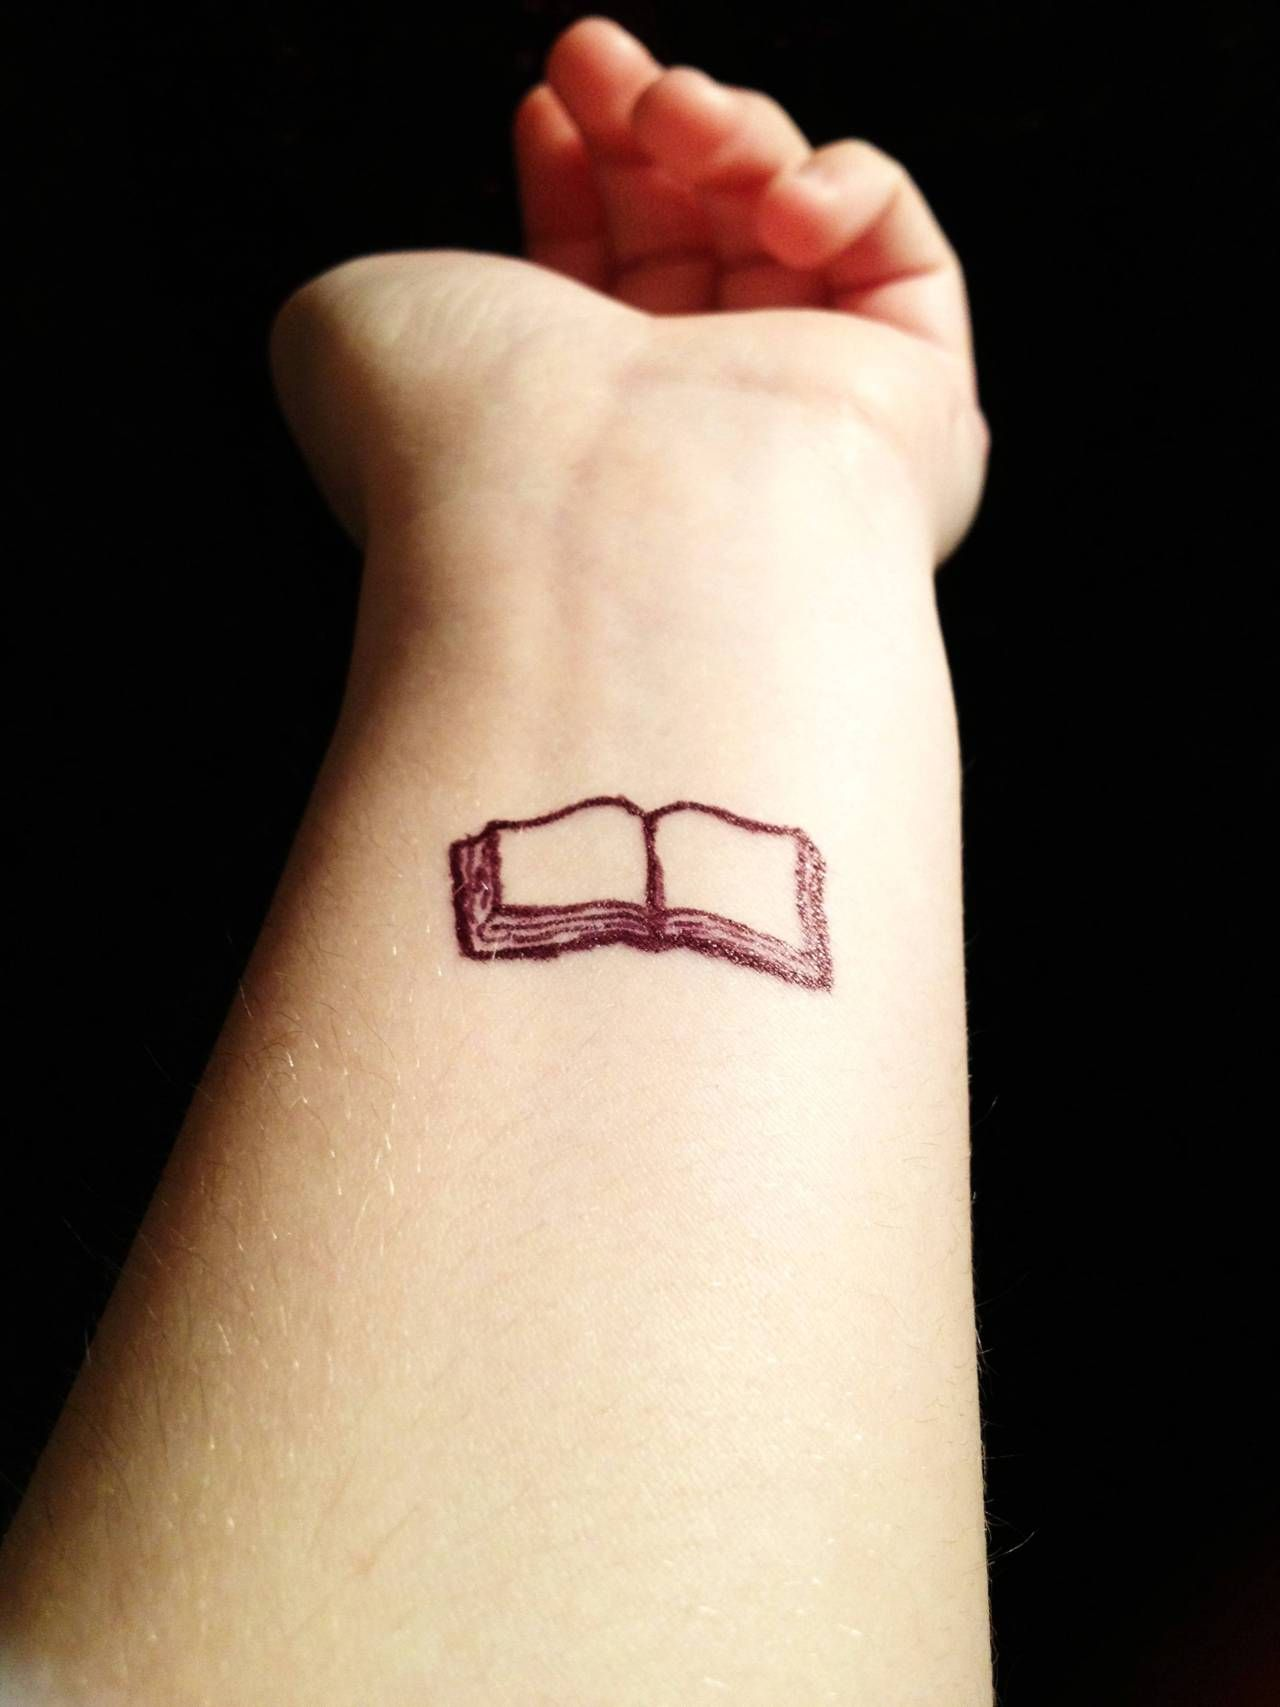 Book Tattoo It D Be Cooler With Words On The Pages But It S Still Pretty Cool Book Tattoo Tattoos Small Book Tattoo